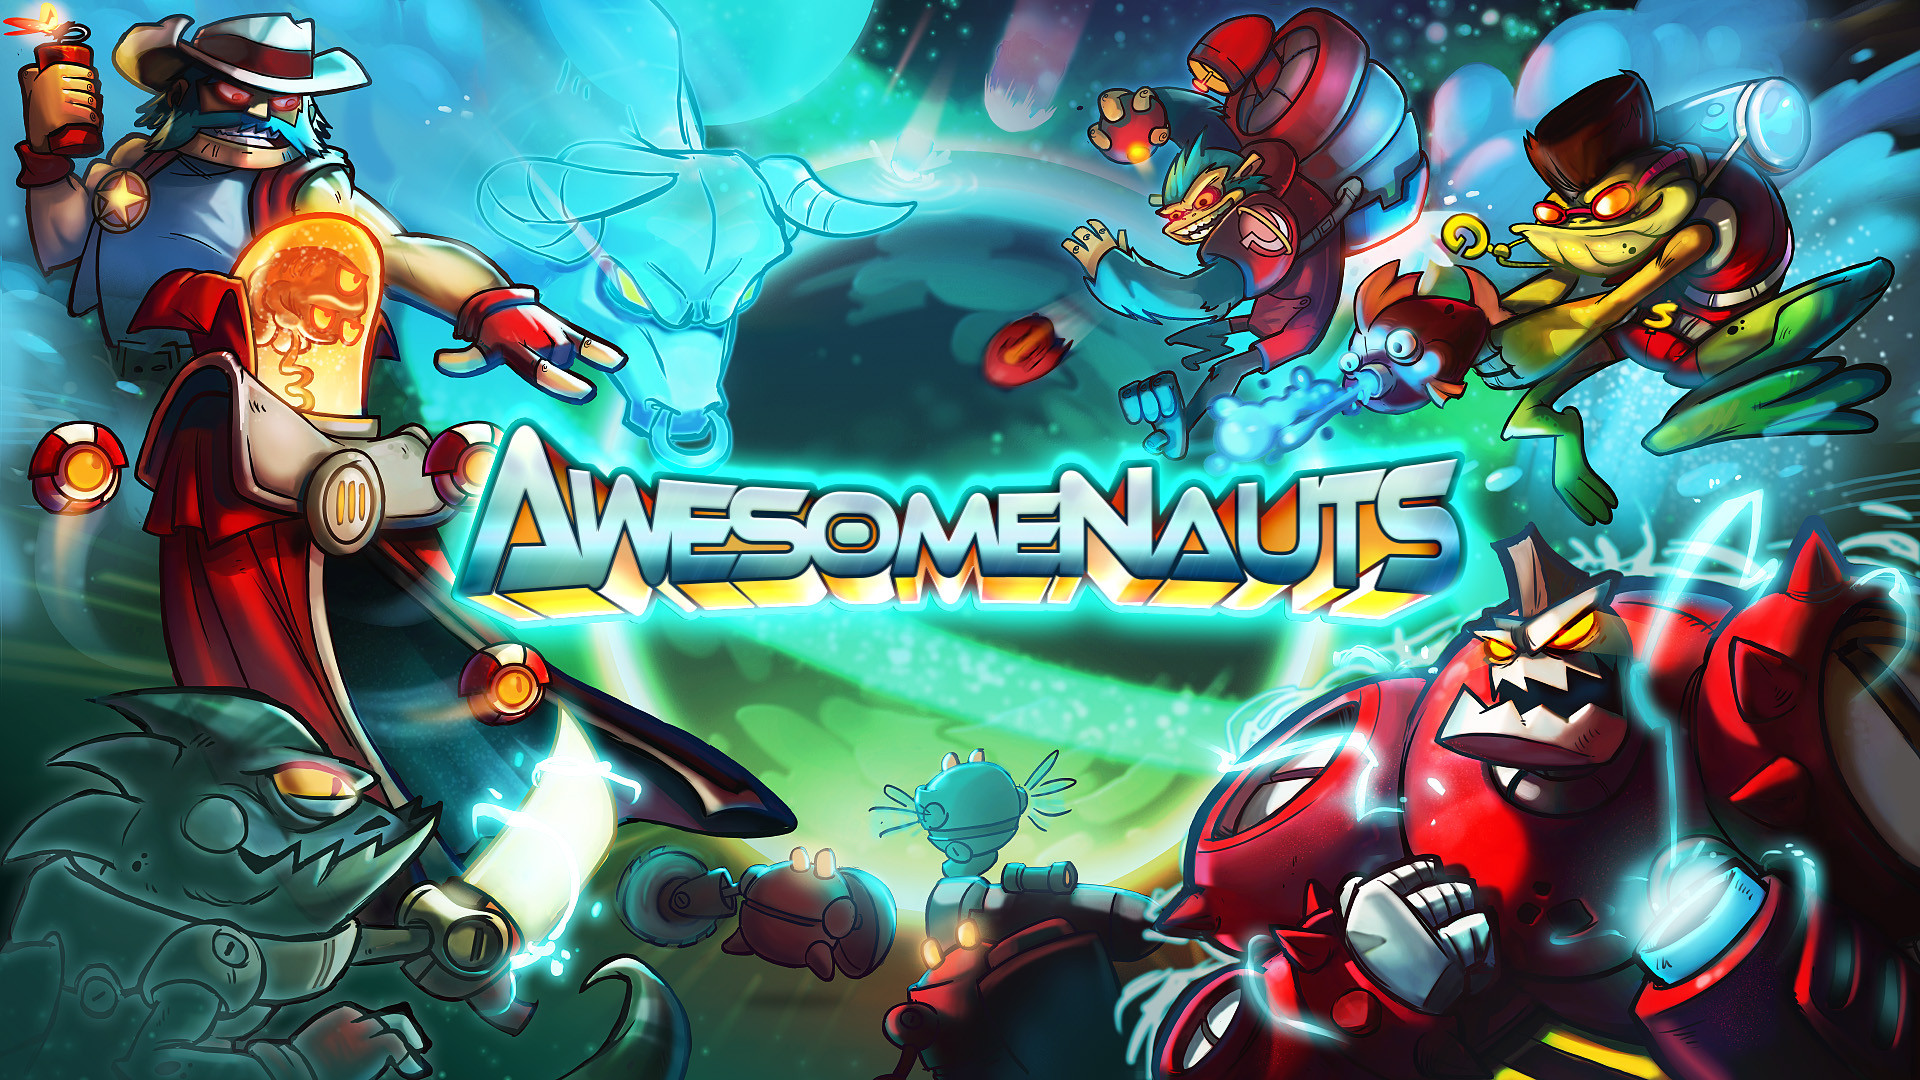 'AwesomeNauts' is updated with two new characters for free